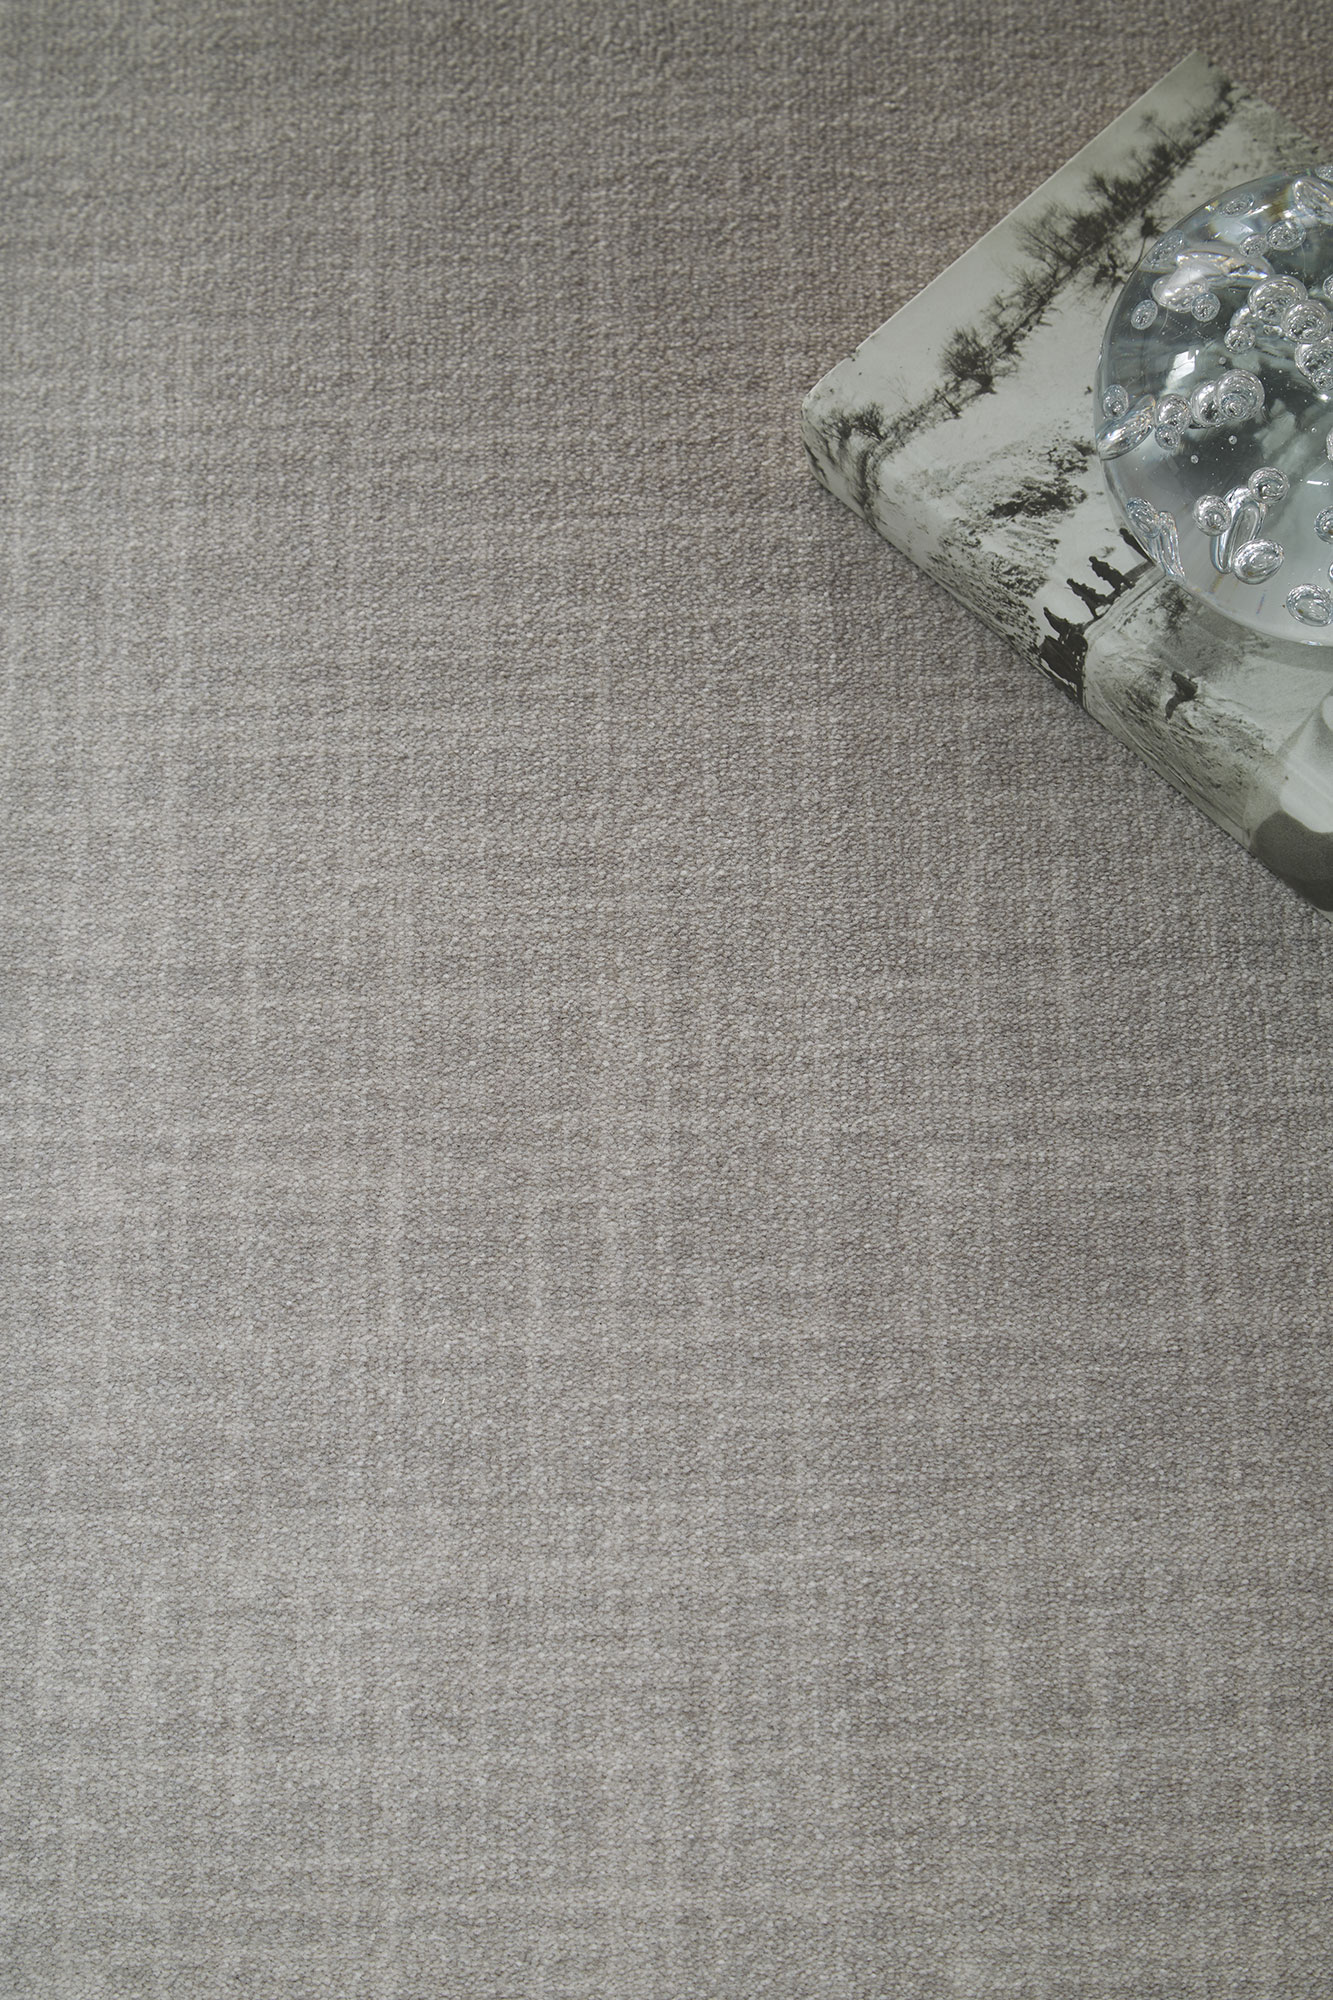 Brushed Linen Patterned Carpet